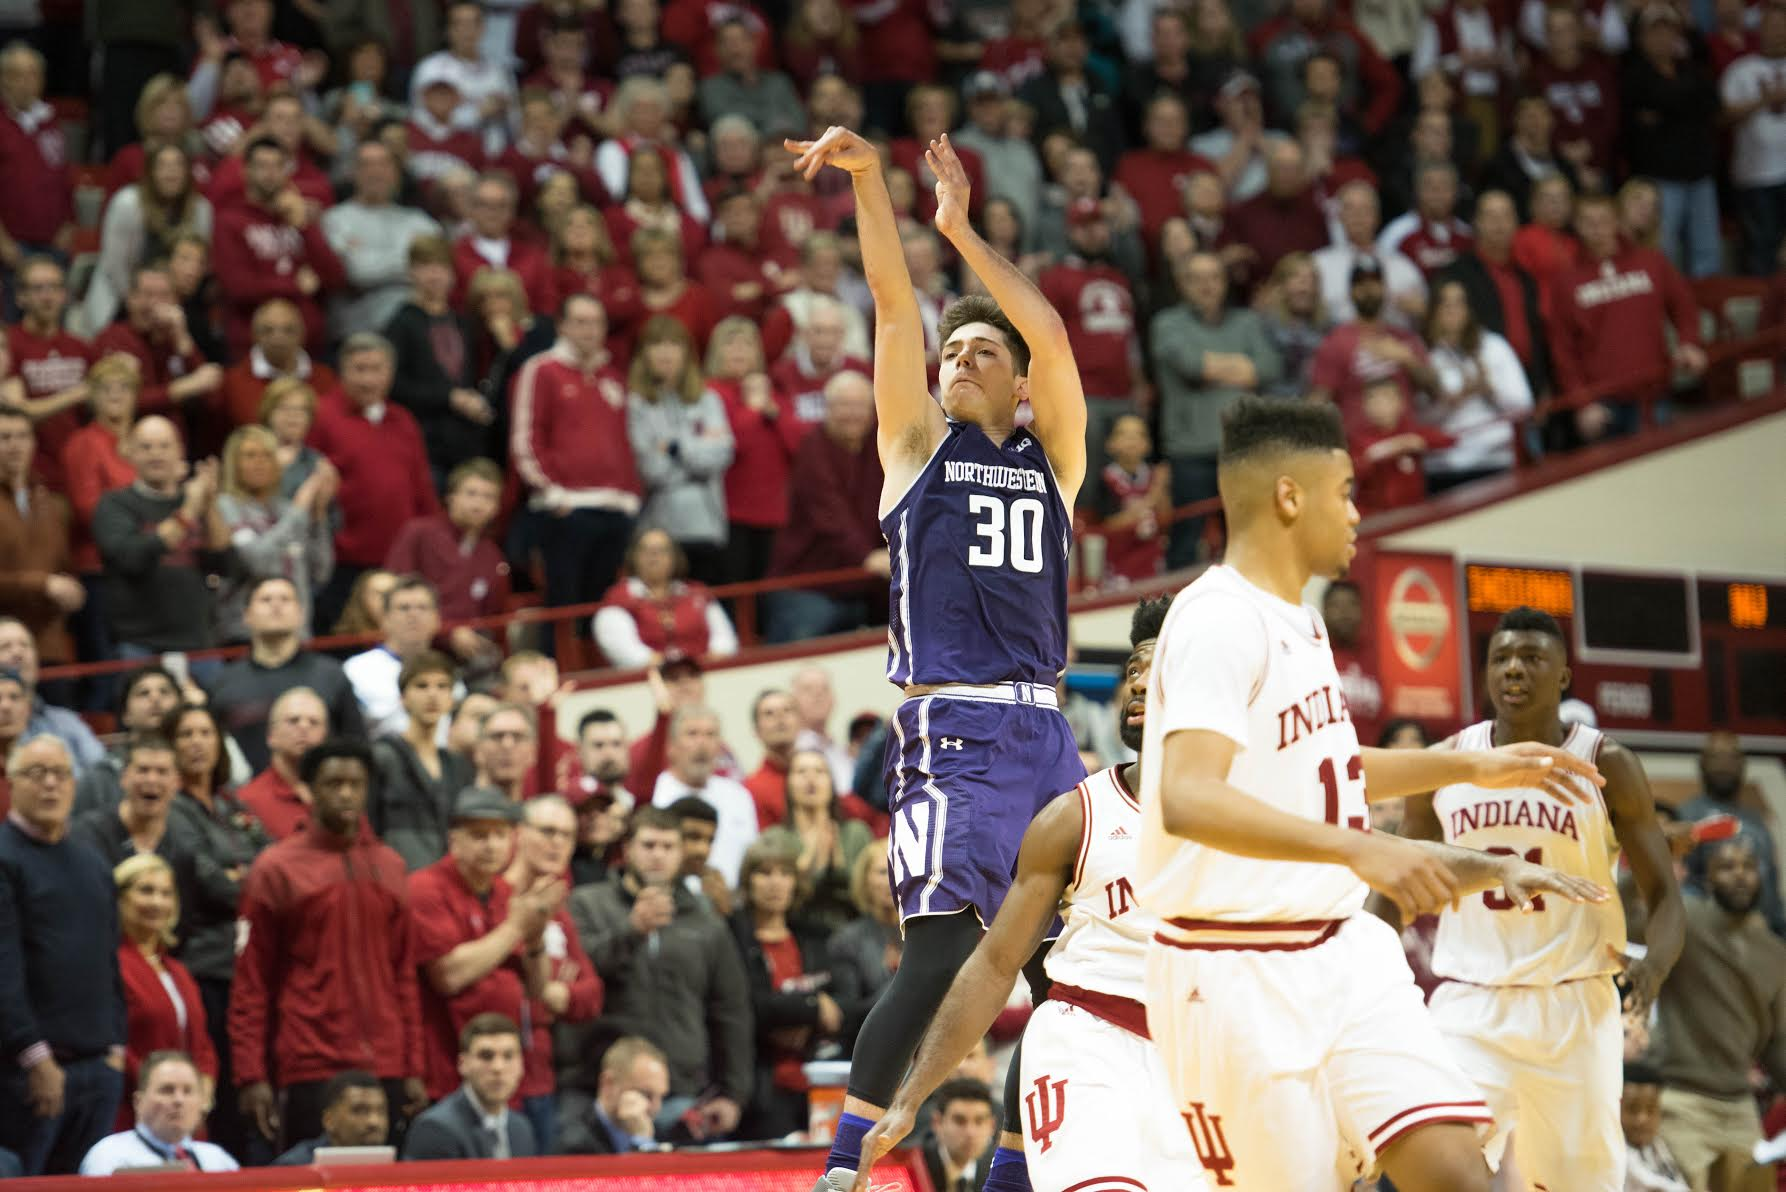 Bryant McIntosh attempts a game-winner. The junior guard's miracle heave bounced off the rim Saturday as the Wildcats lost a heartbreaker in Indiana.